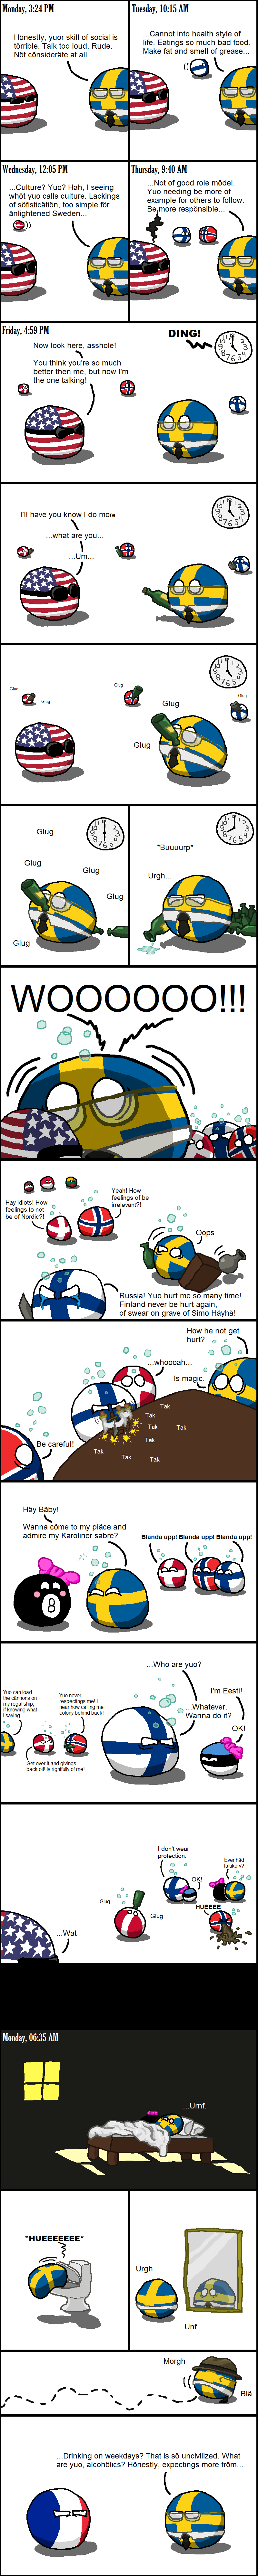 Daily Polandball: The Nordic Model